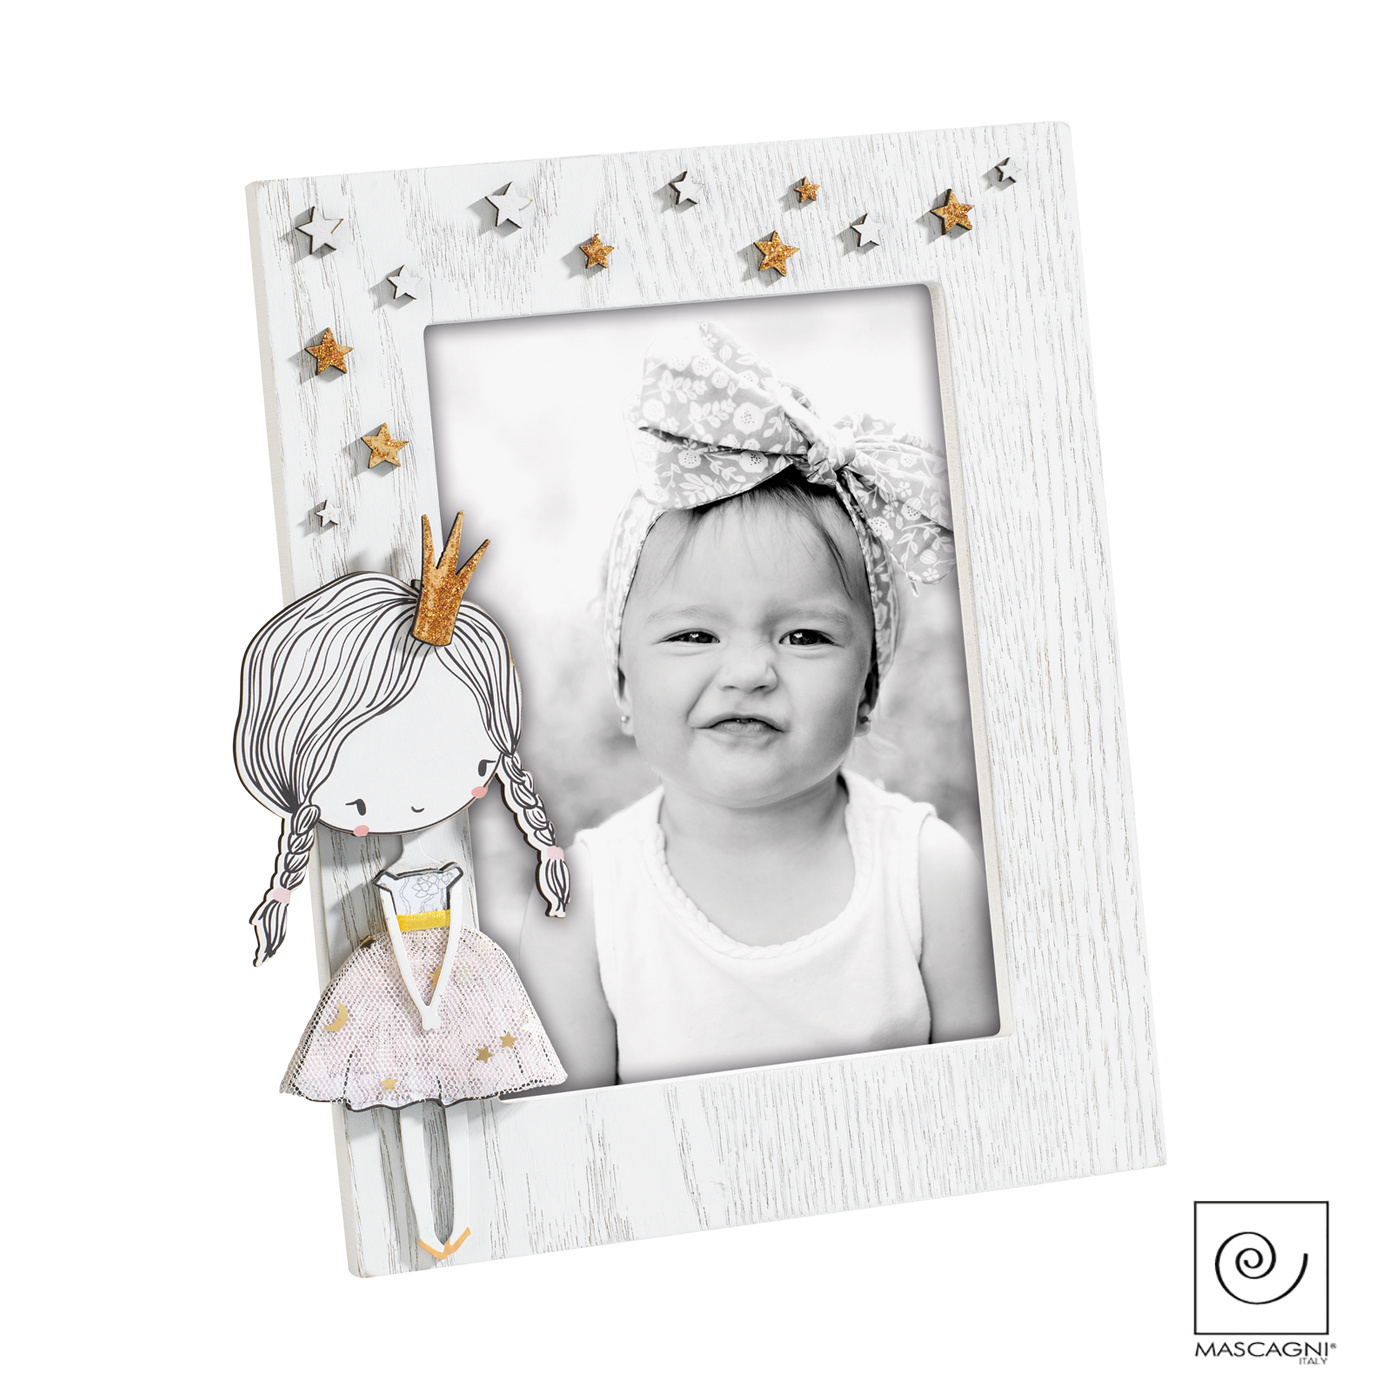 Art Mascagni A1099 PHOTO FRAME 13X18